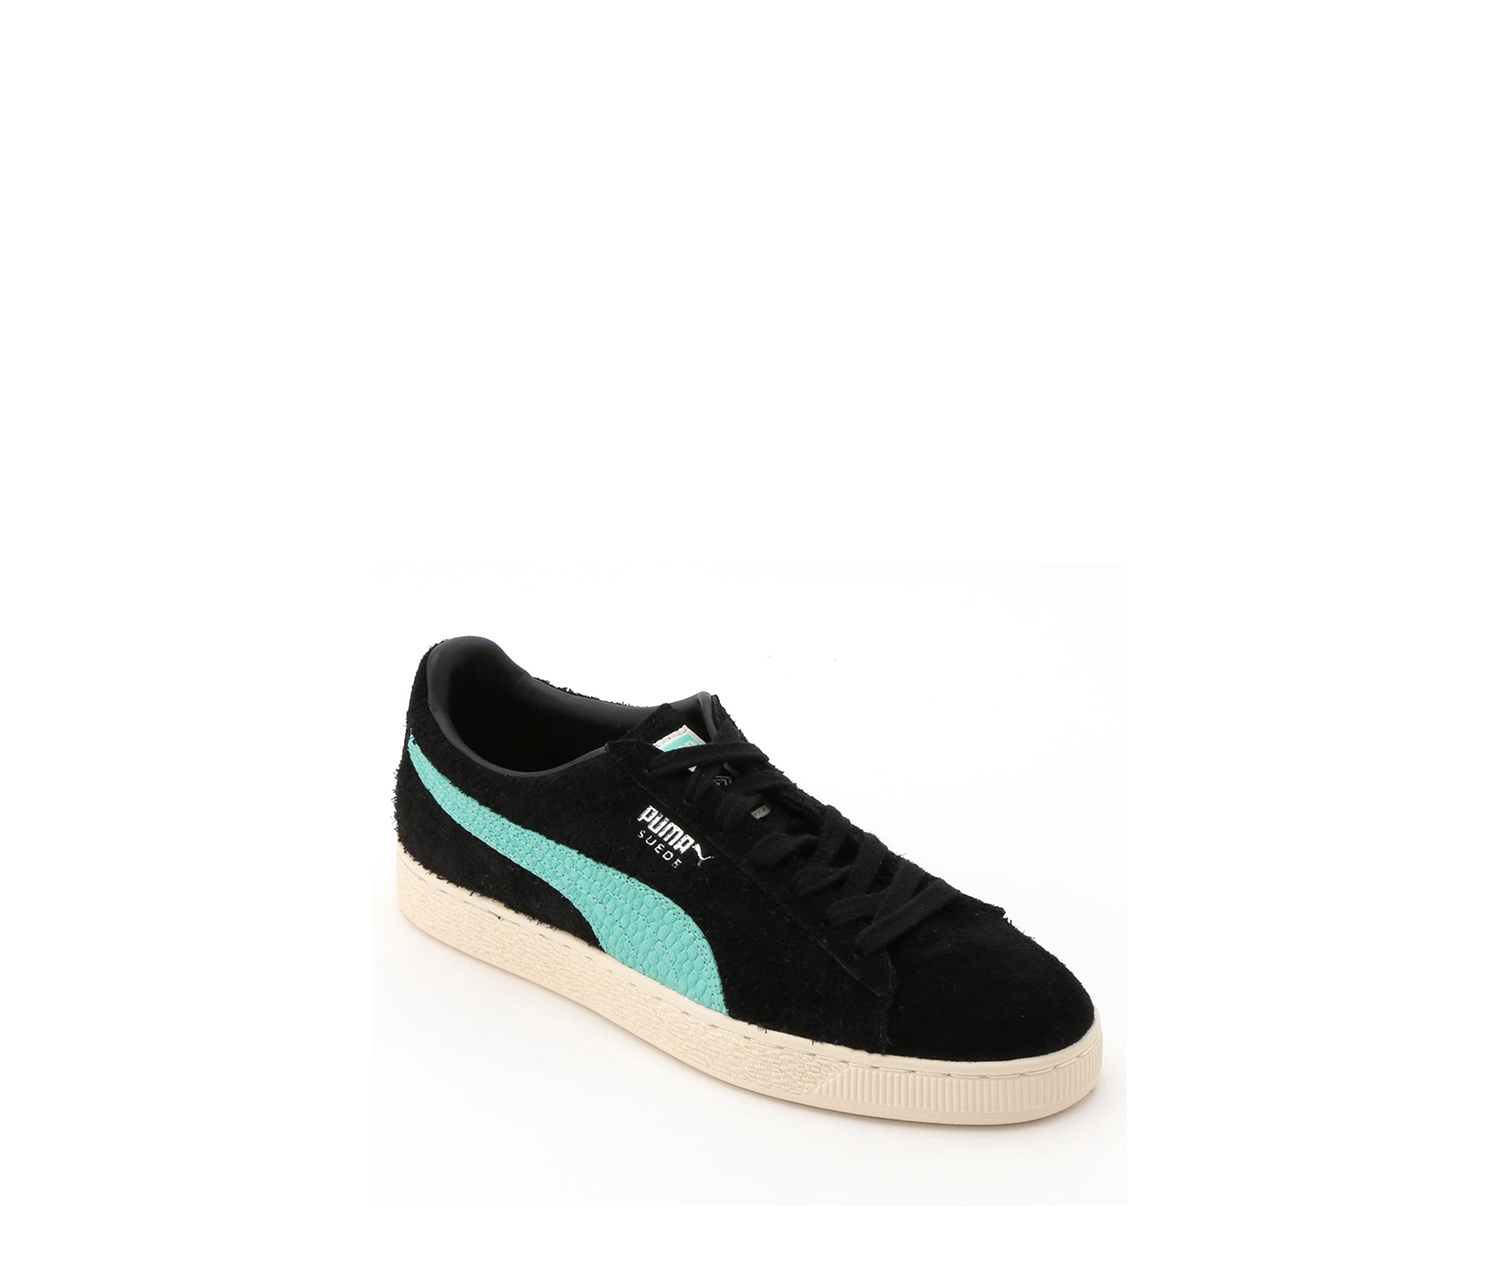 Puma Big Girl's Suede Diamond Sneakers, Black